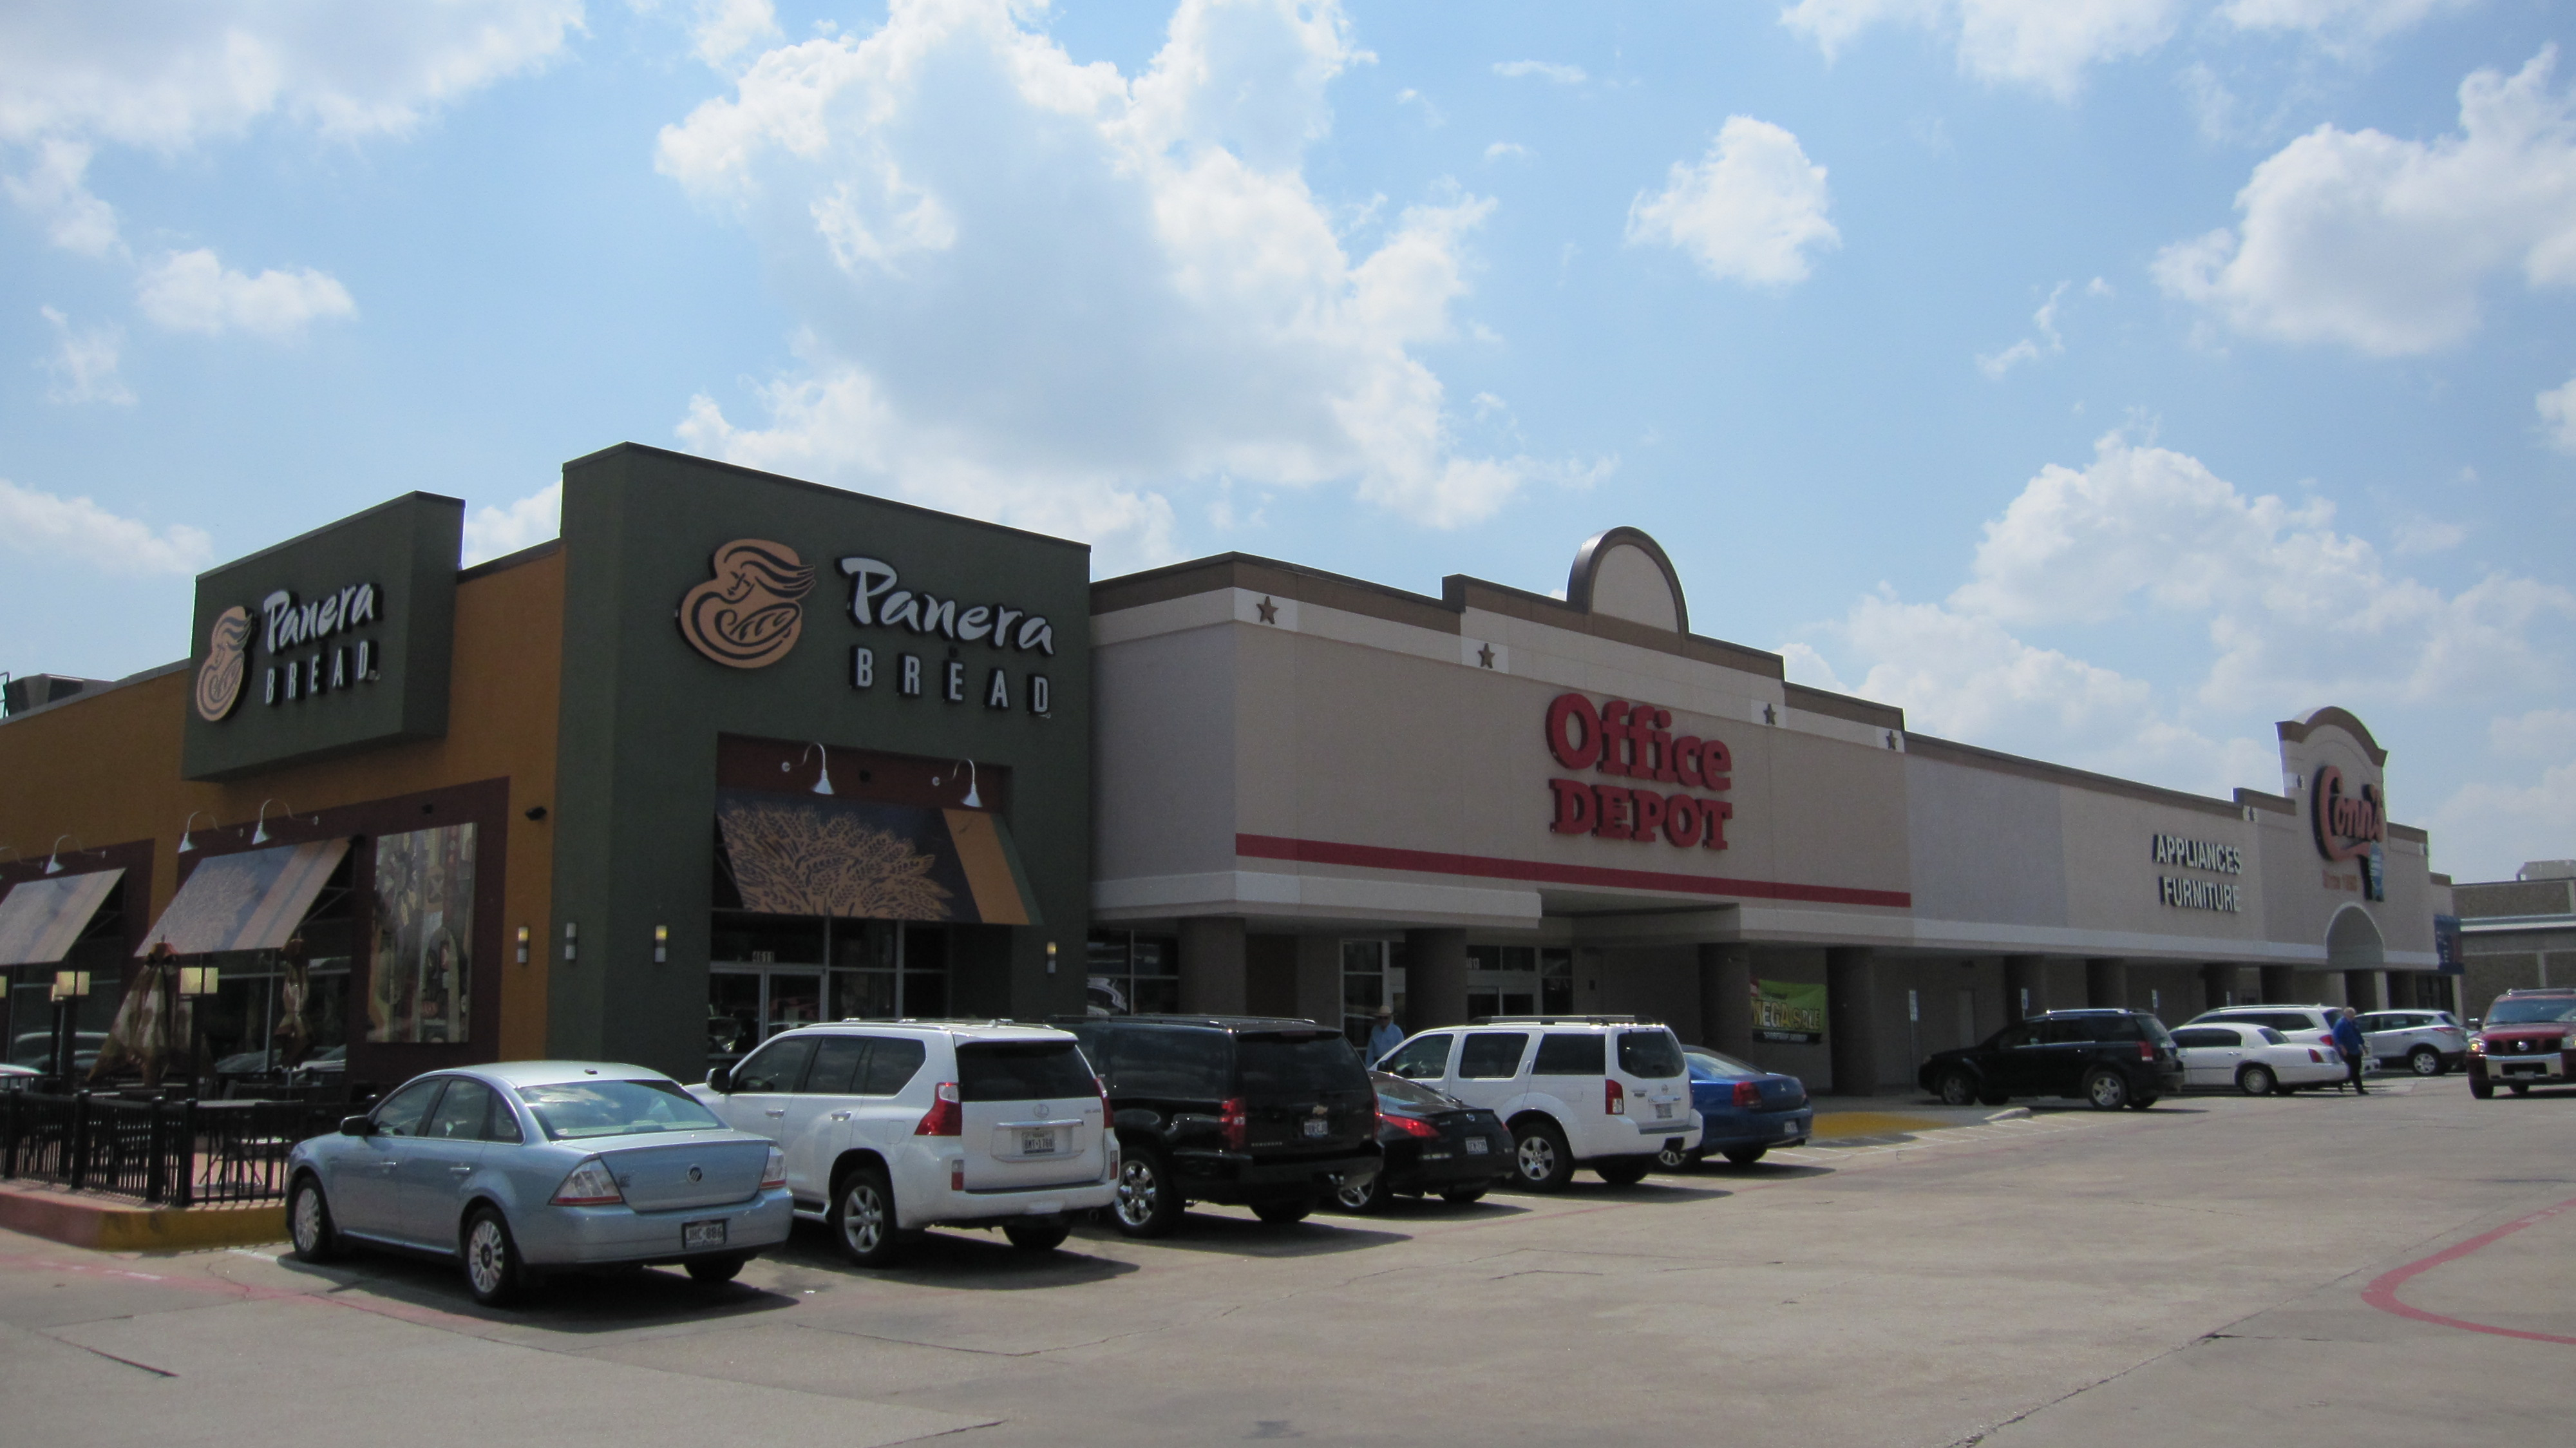 Office Depot / Panera Bread / Conn's / Casual Male Shopping Center